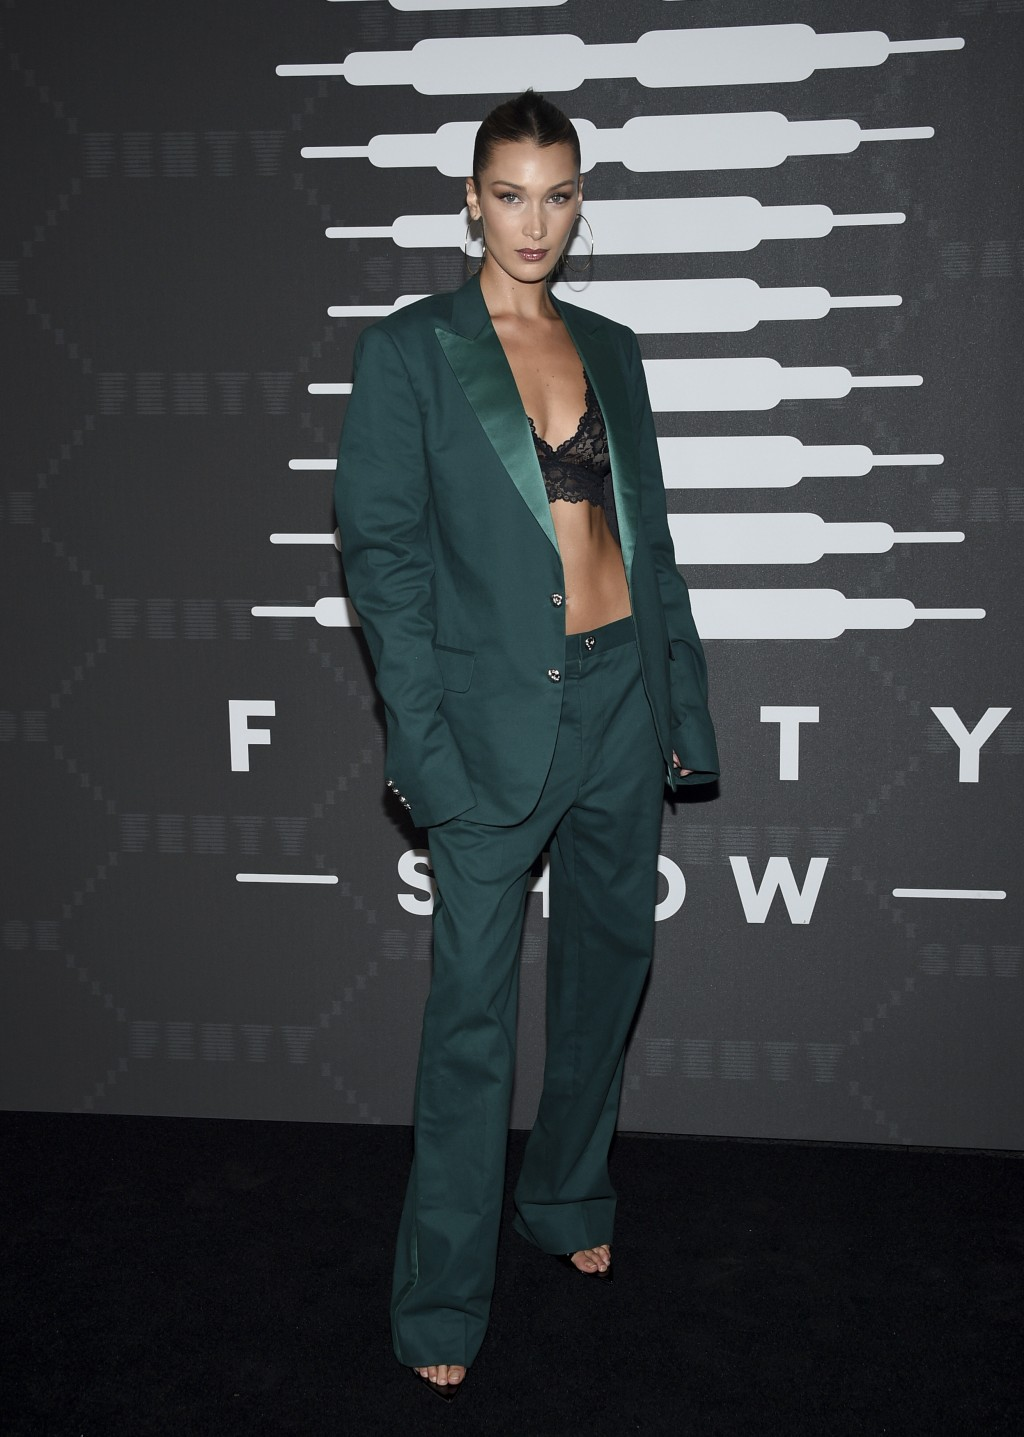 Model Bella Hadid attends the Spring/Summer 2020 Savage X Fenty show, presented by Amazon Prime, at the Barclays Center on Tuesday, Sept, 10, 2019, in